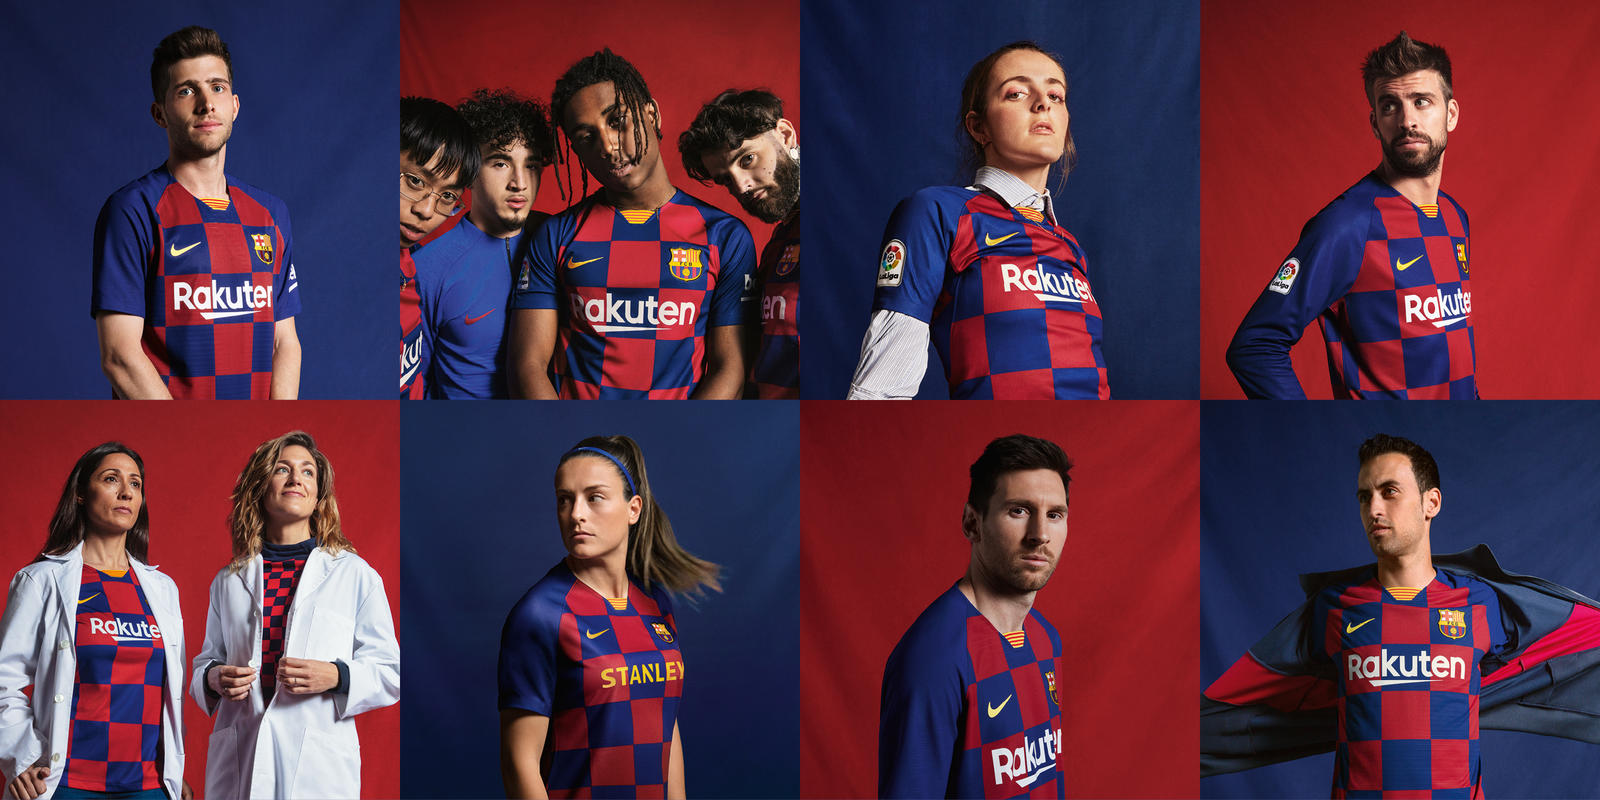 purchase cheap 7549e a7f07 FC Barcelona 2019-20 Home Kit - Nike News